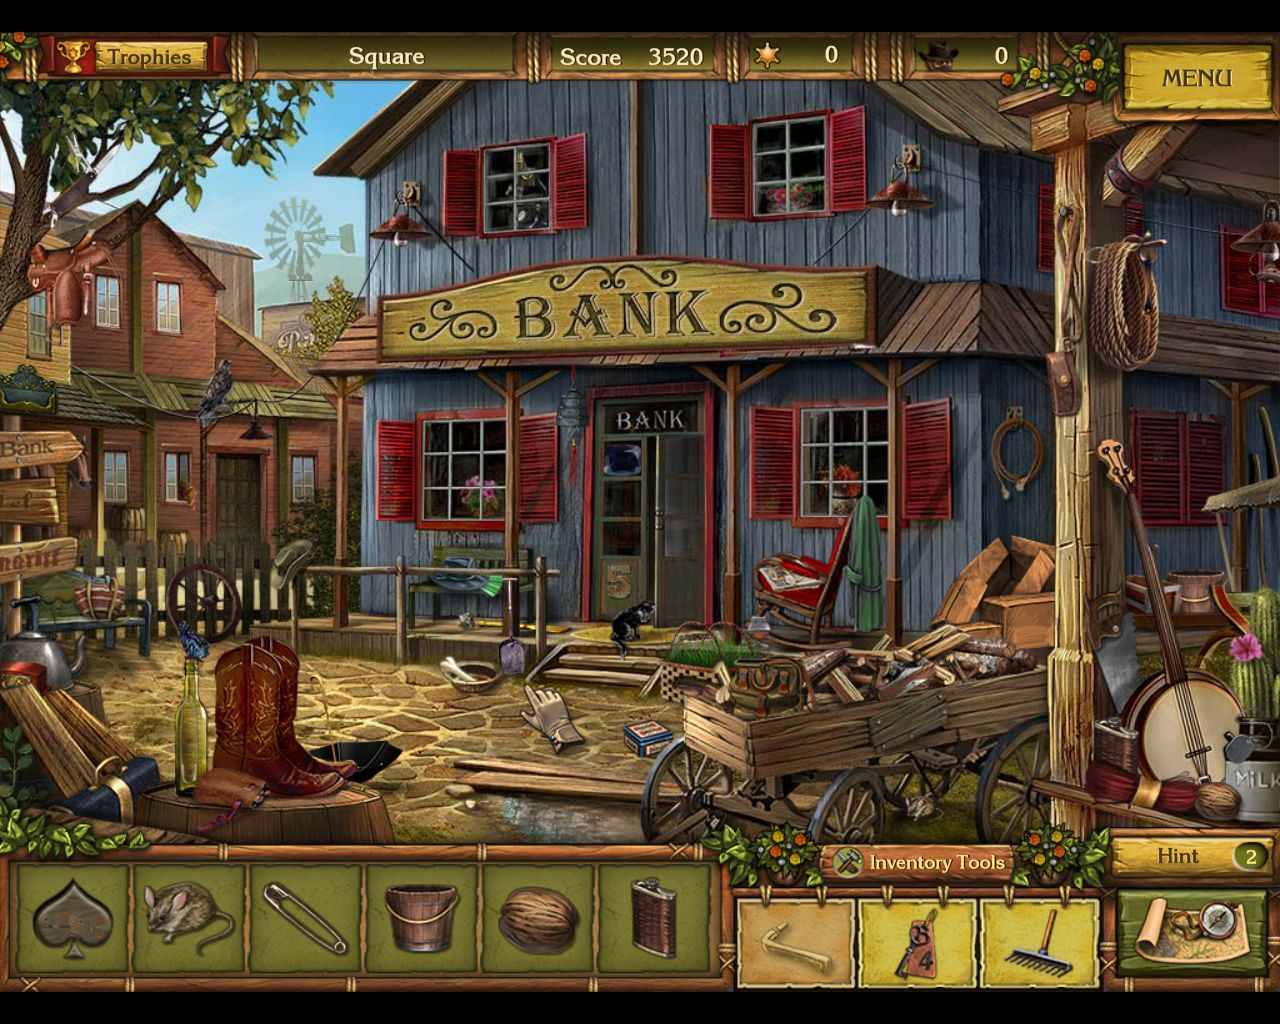 Golden Trails: The New Western Rush Macintosh Square - objects